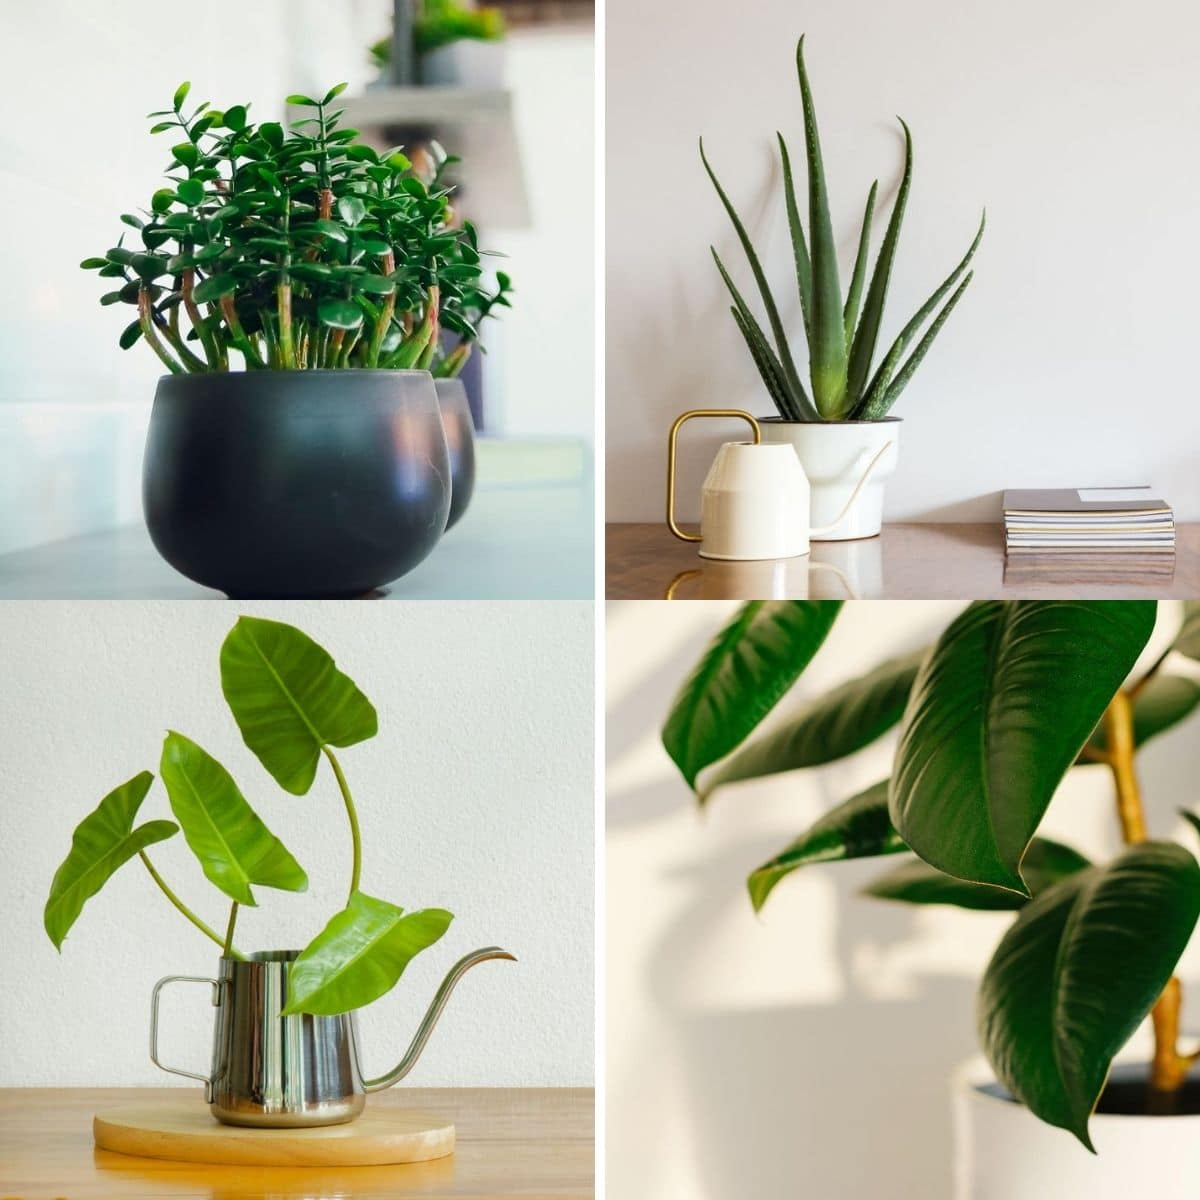 Collage photo featuring 4 plants from the content.